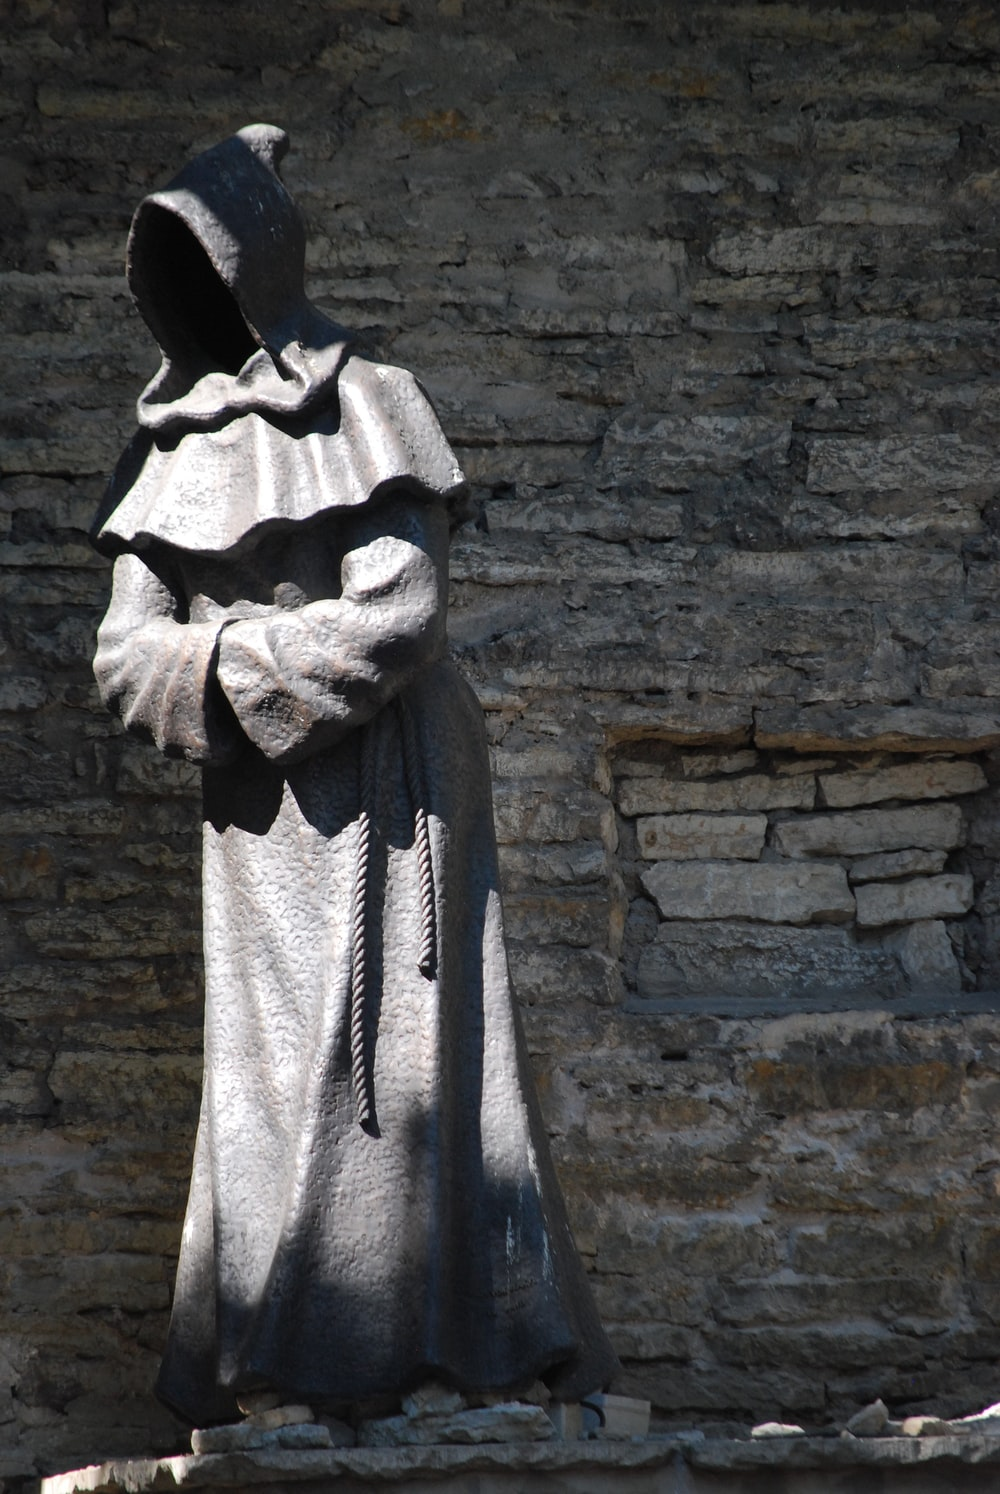 person wearing hooded dress statue